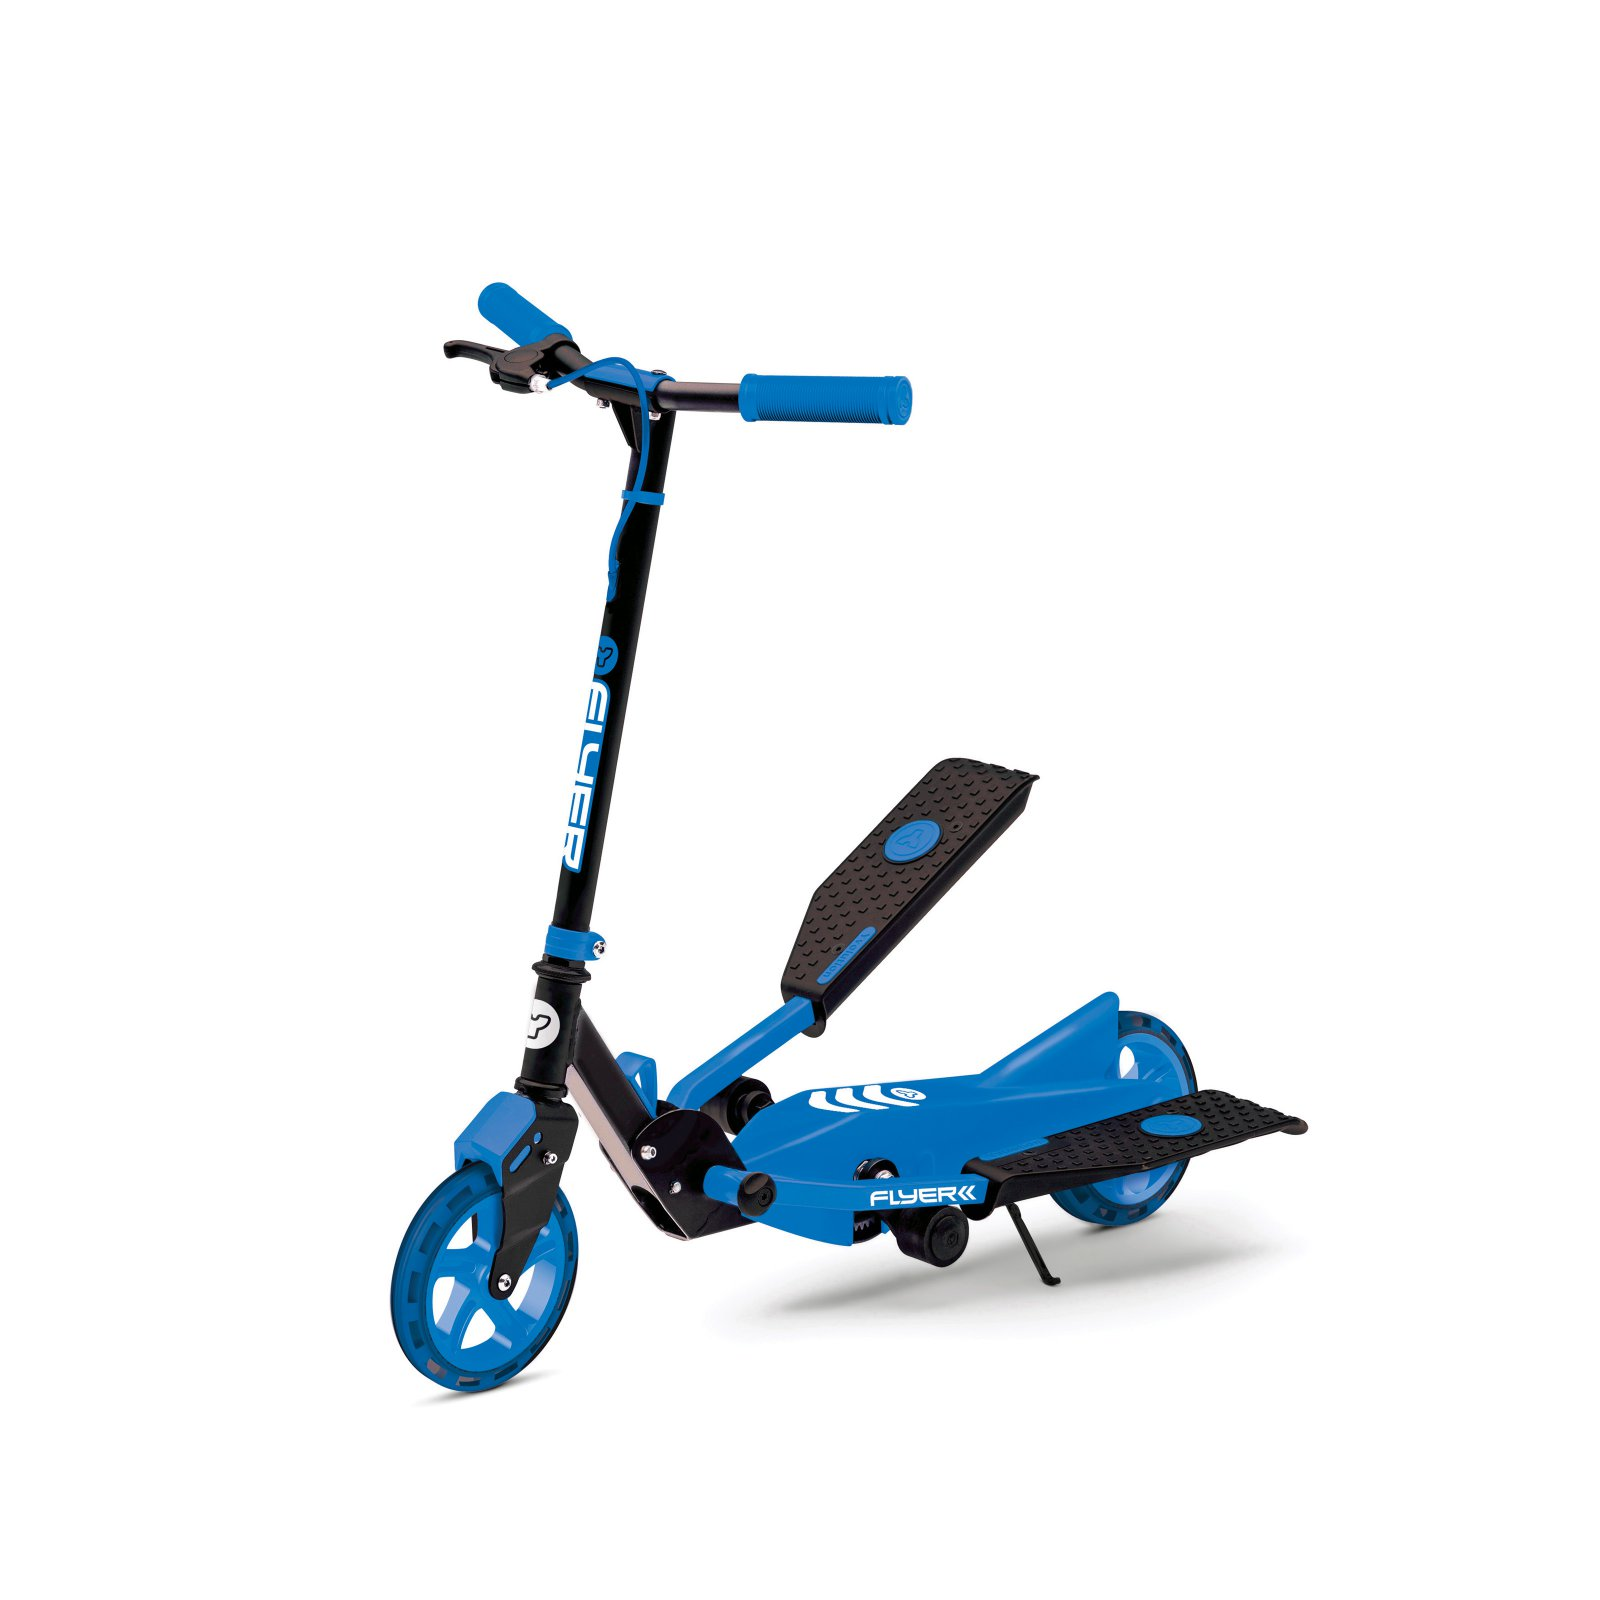 Yvolution 100739 Y Flyer Kids Childrens Youth Stepper Scooter for Ages 7+, Red